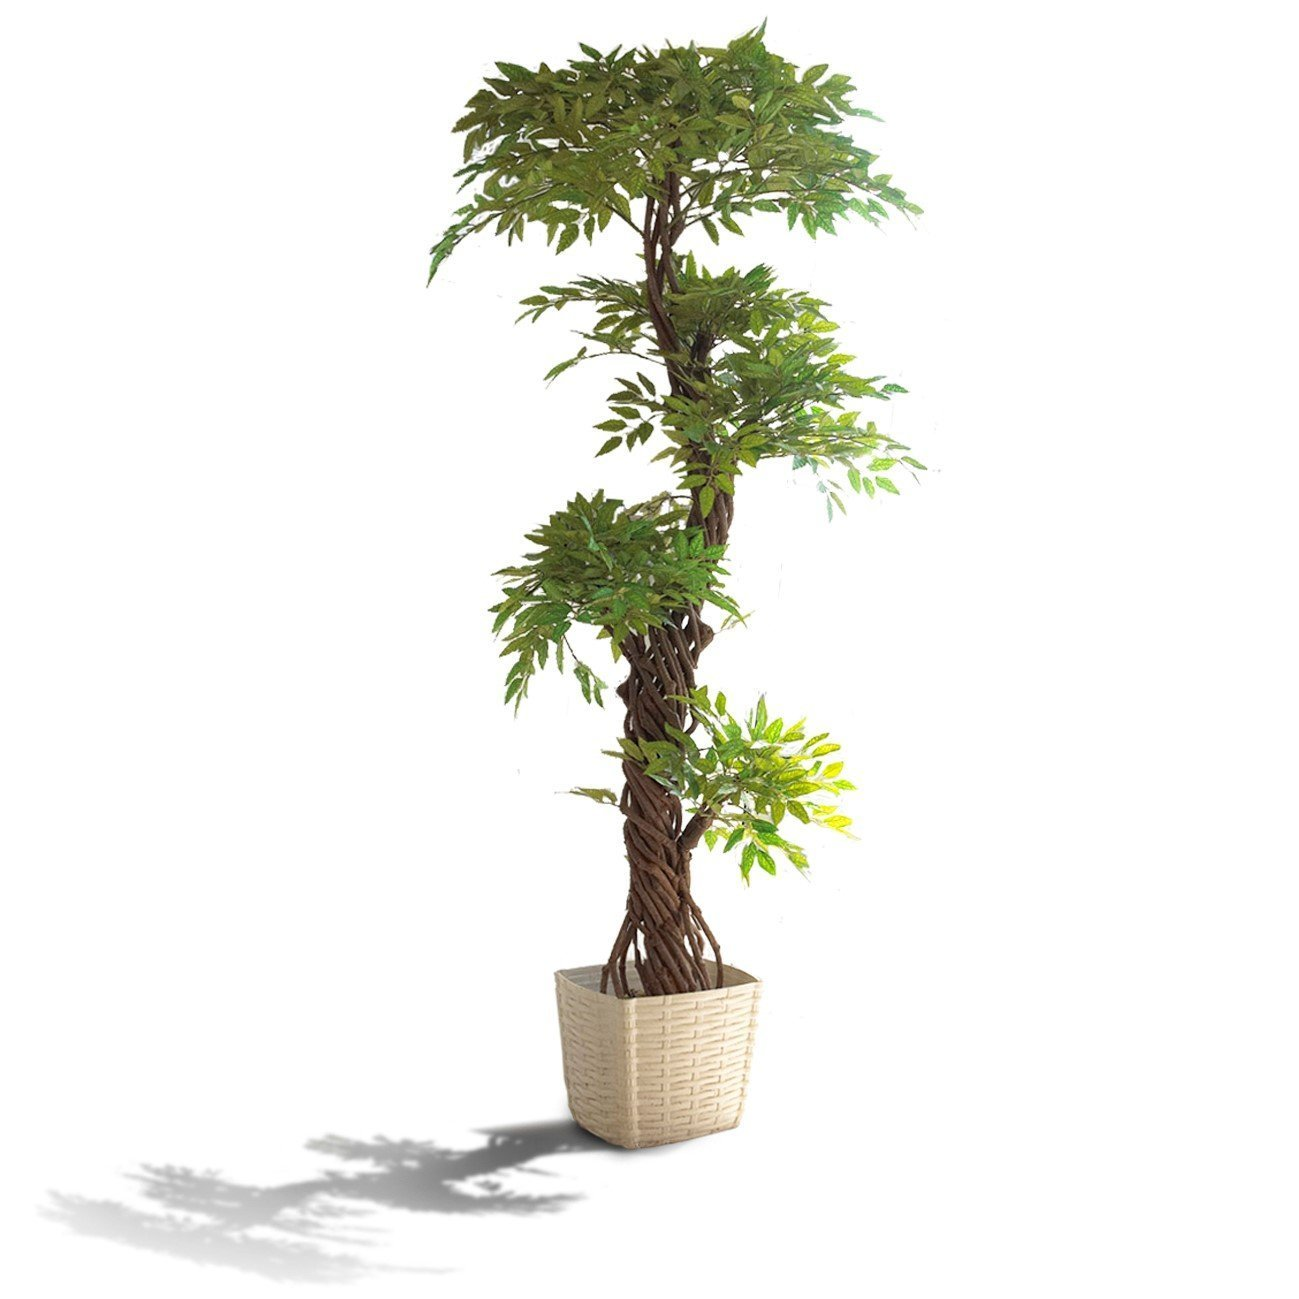 Artificial Trees Plants: Faux Contemporary Artificial Plants And Trees, Luxury